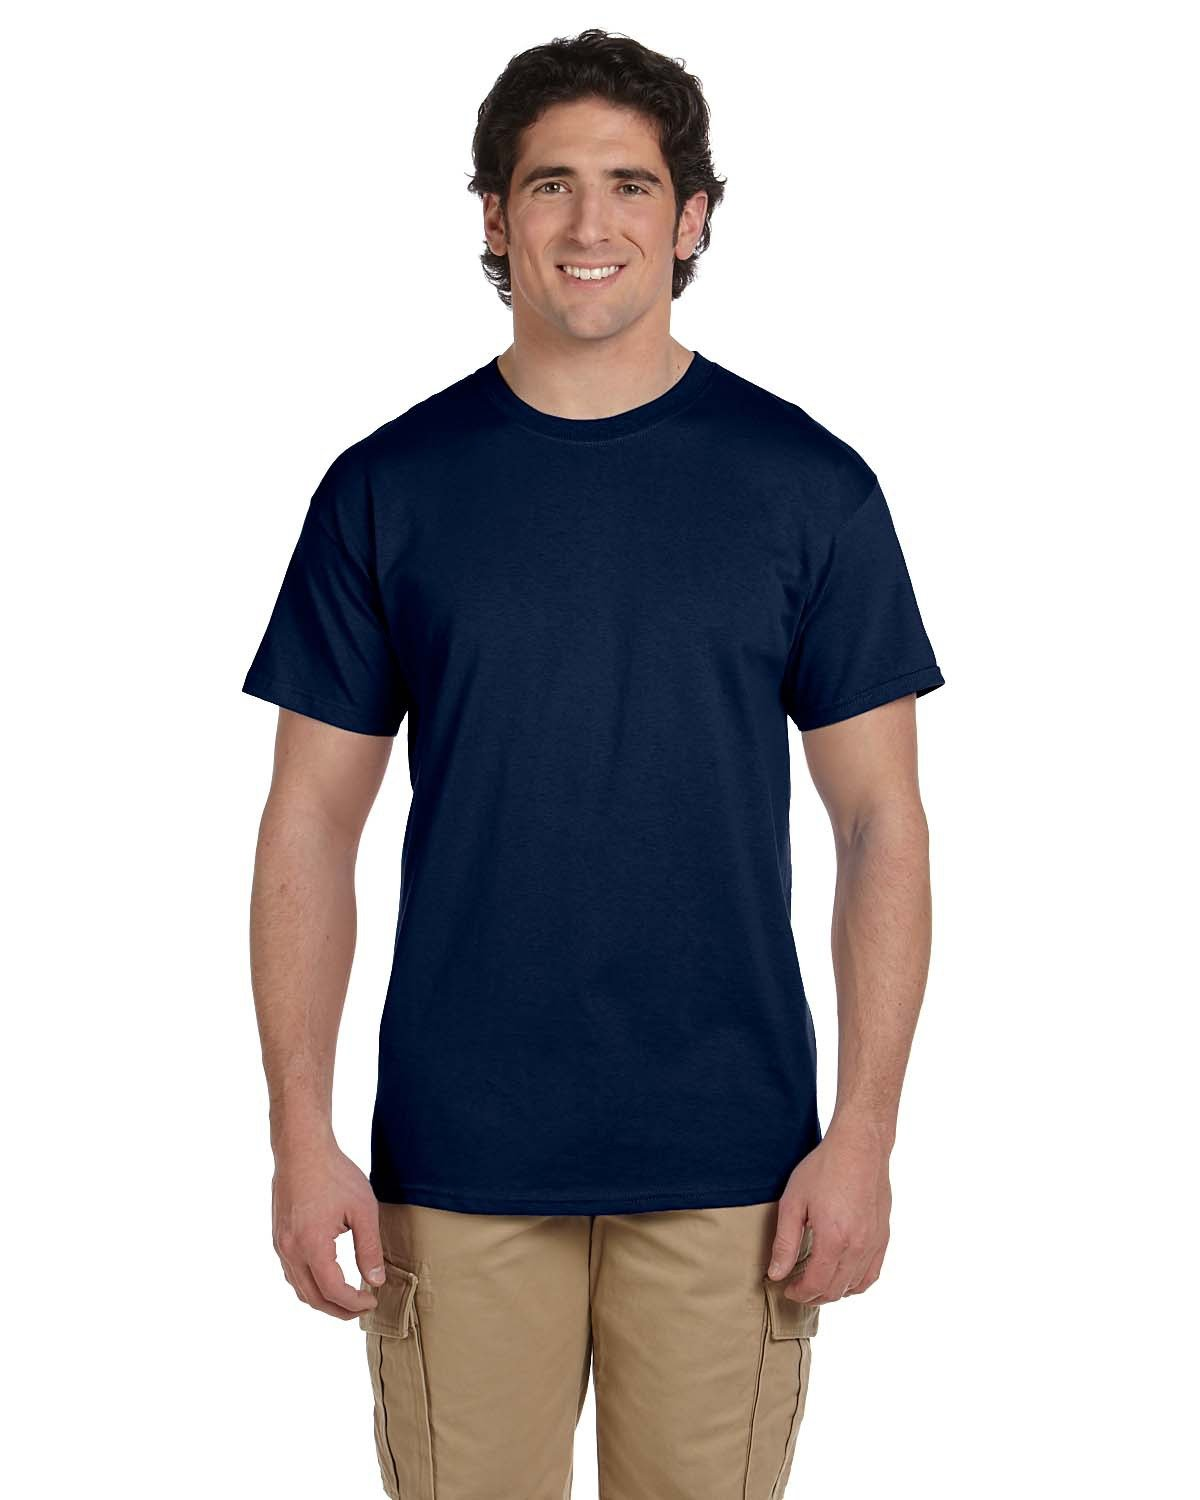 Fruit of the Loom Adult HD Cotton™ T-Shirt J NAVY